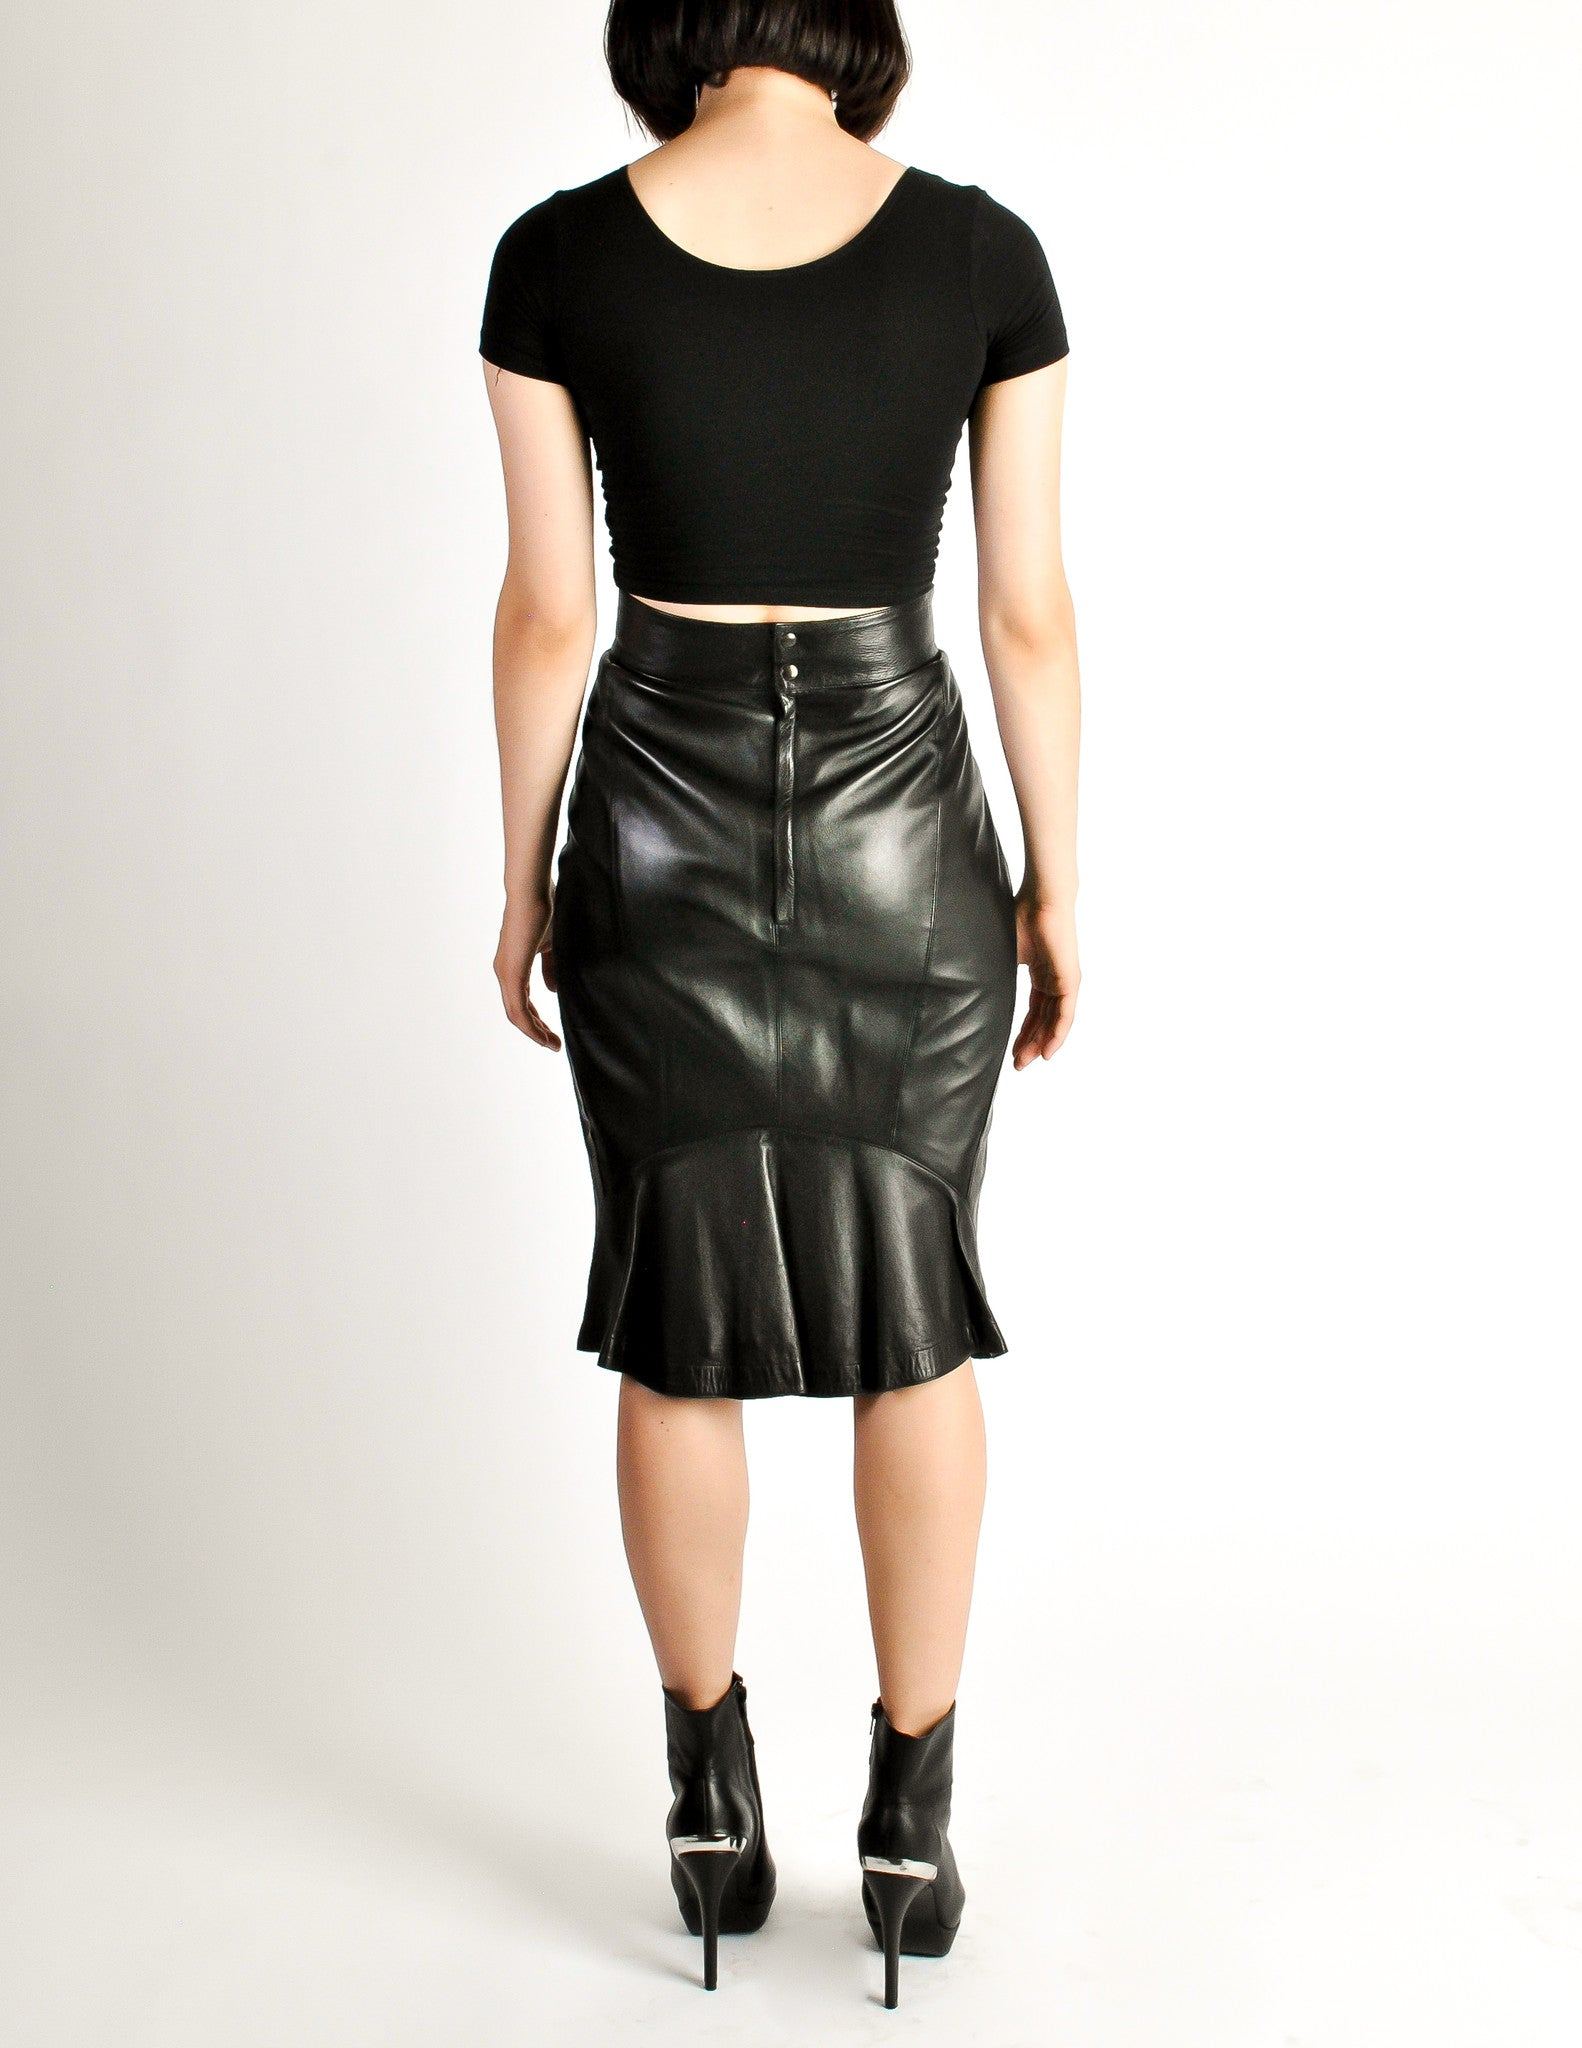 Ala 239 A Vintage Black Leather Pencil Skirt From Amarcord